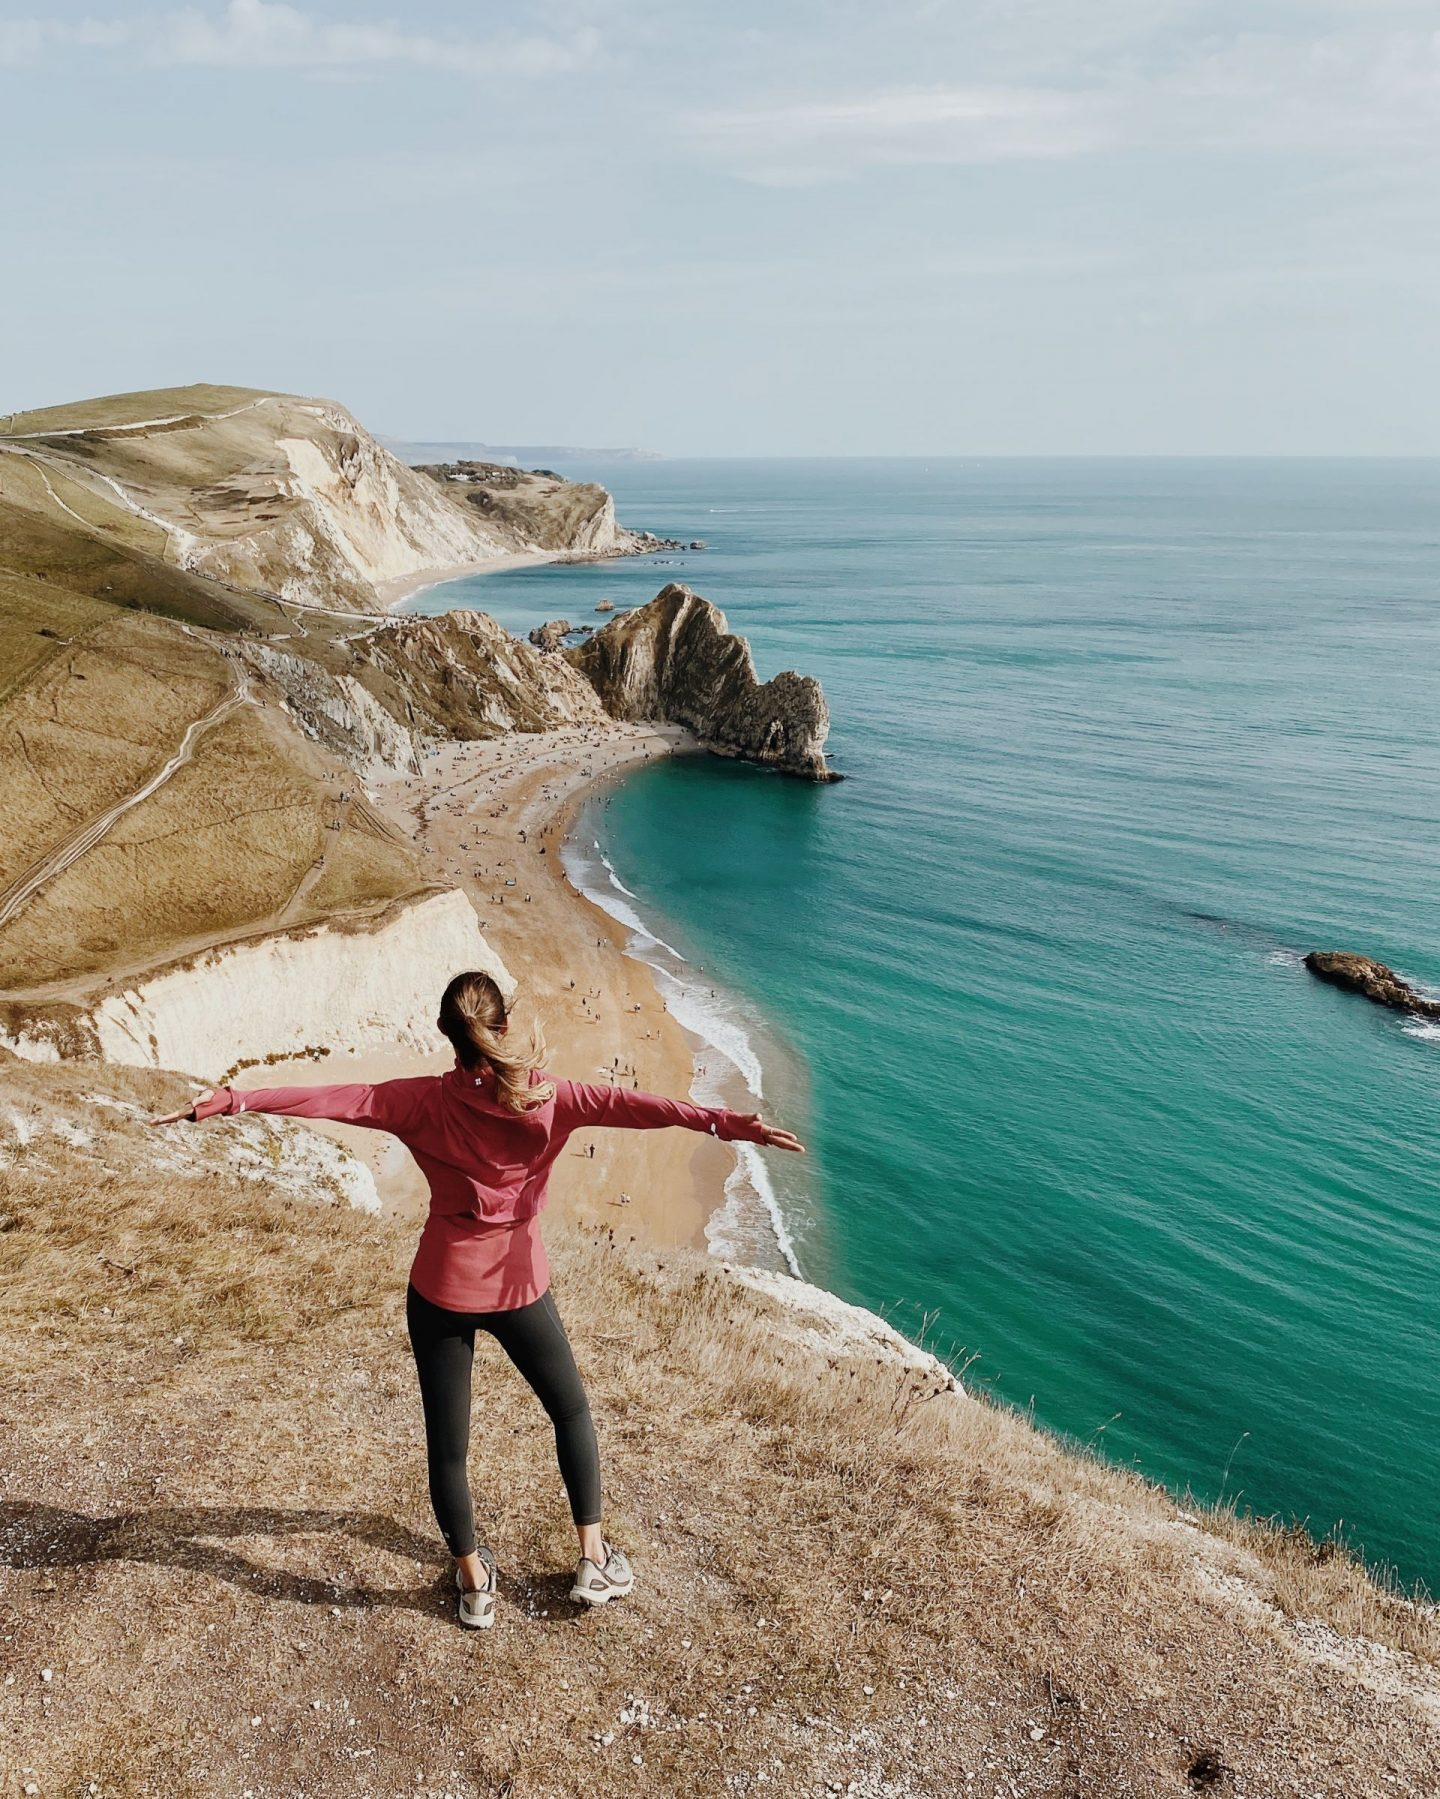 Hike in the Jurassic Coast, England: Durdle Door to Lulworth Cove